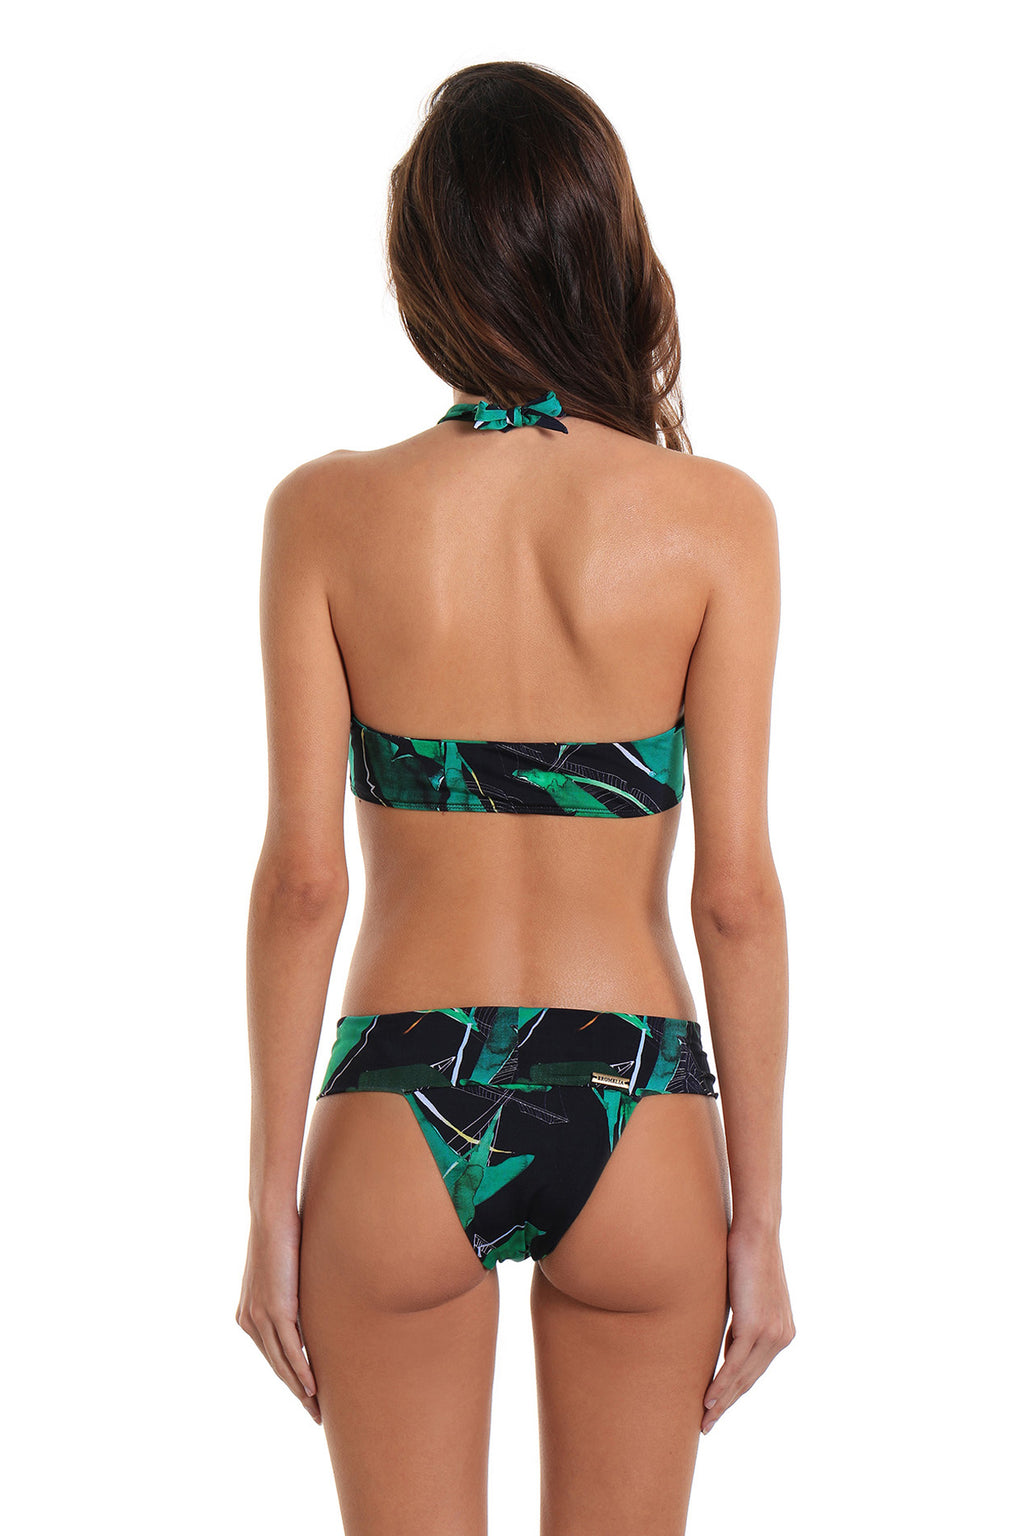 Bikini Two-Piece Swimsuit Copacabana Aguarela